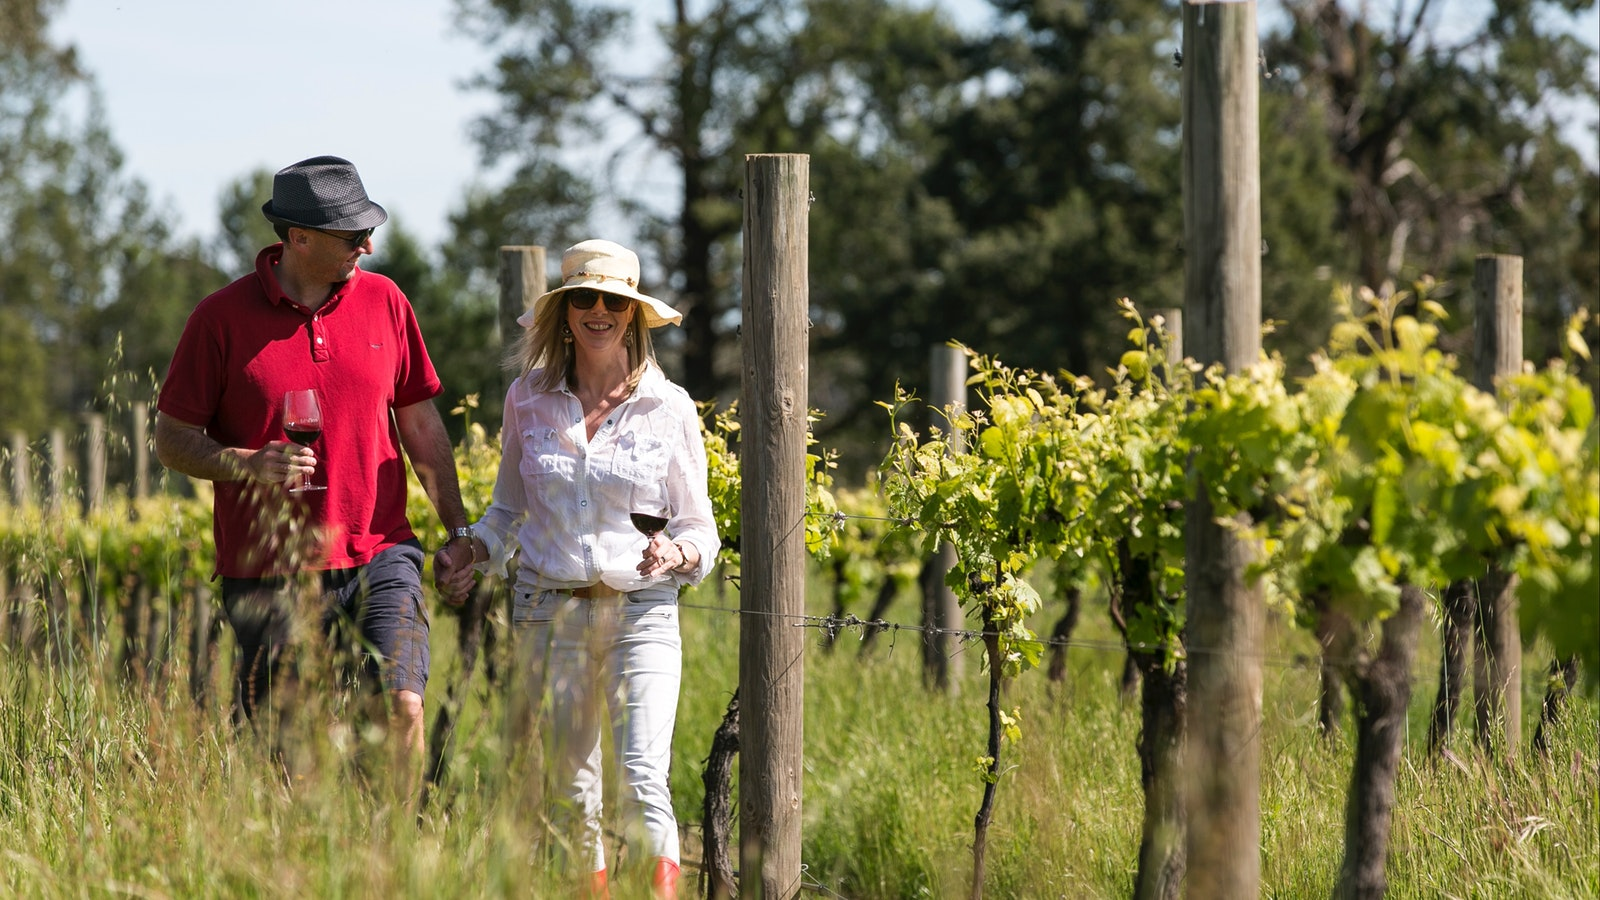 Walking through the vineyard